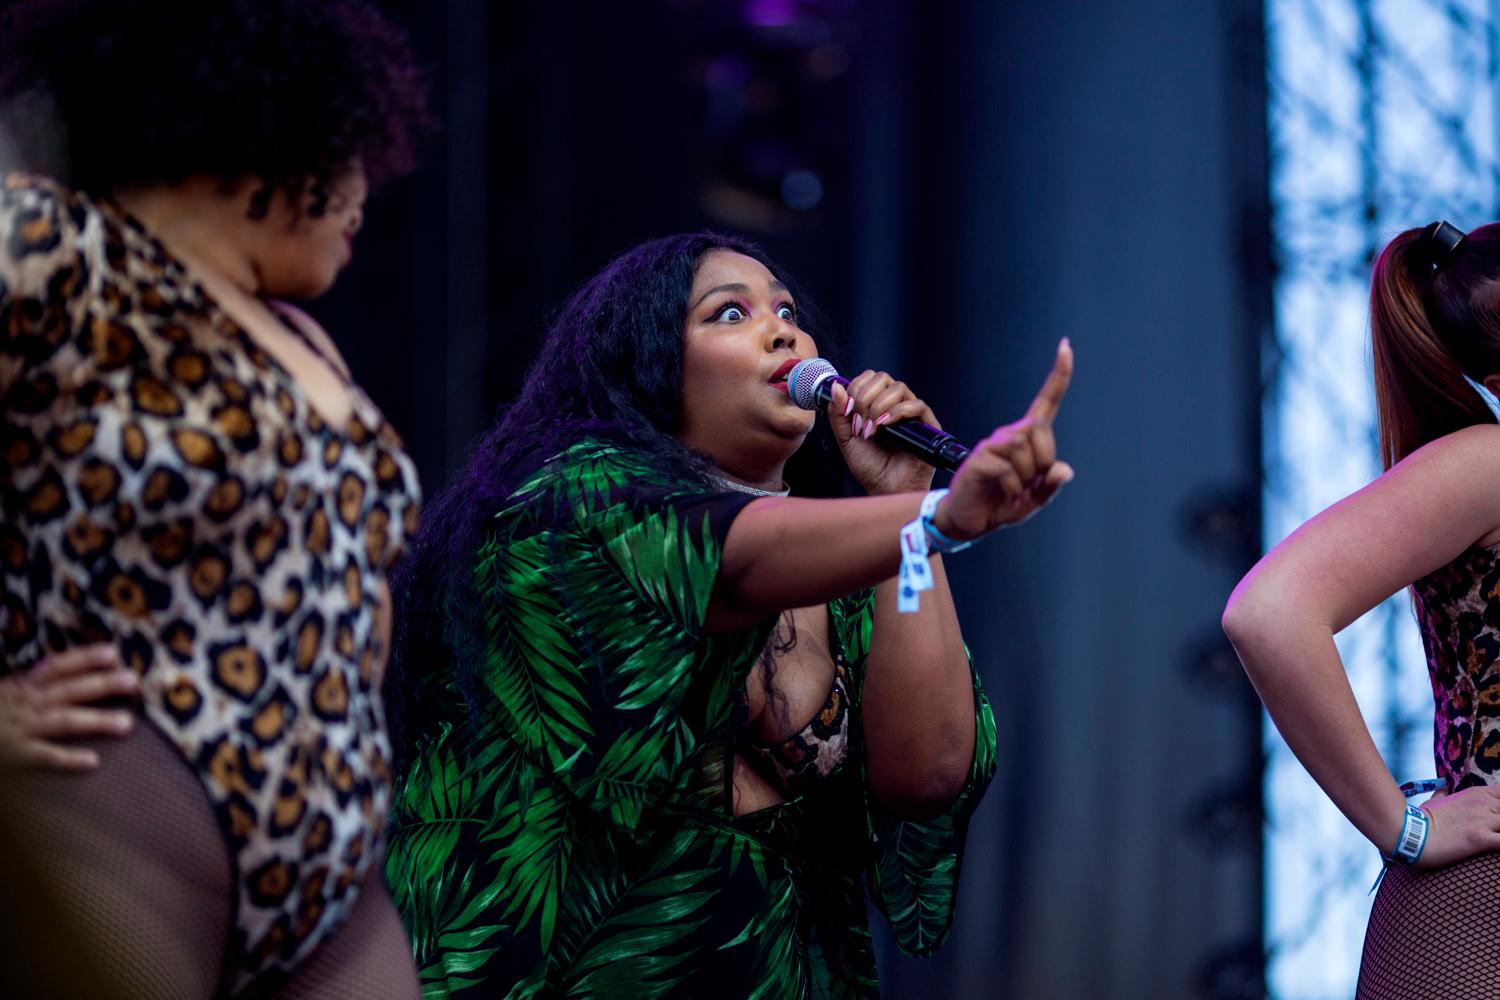 Lizzo performs at the second day of the annual Sasquatch! Music Festival. The three-day festival runs throughout the Memorial Day Weekend, from May 25-27, 2018. (Sy Bean / Seattle Refined)